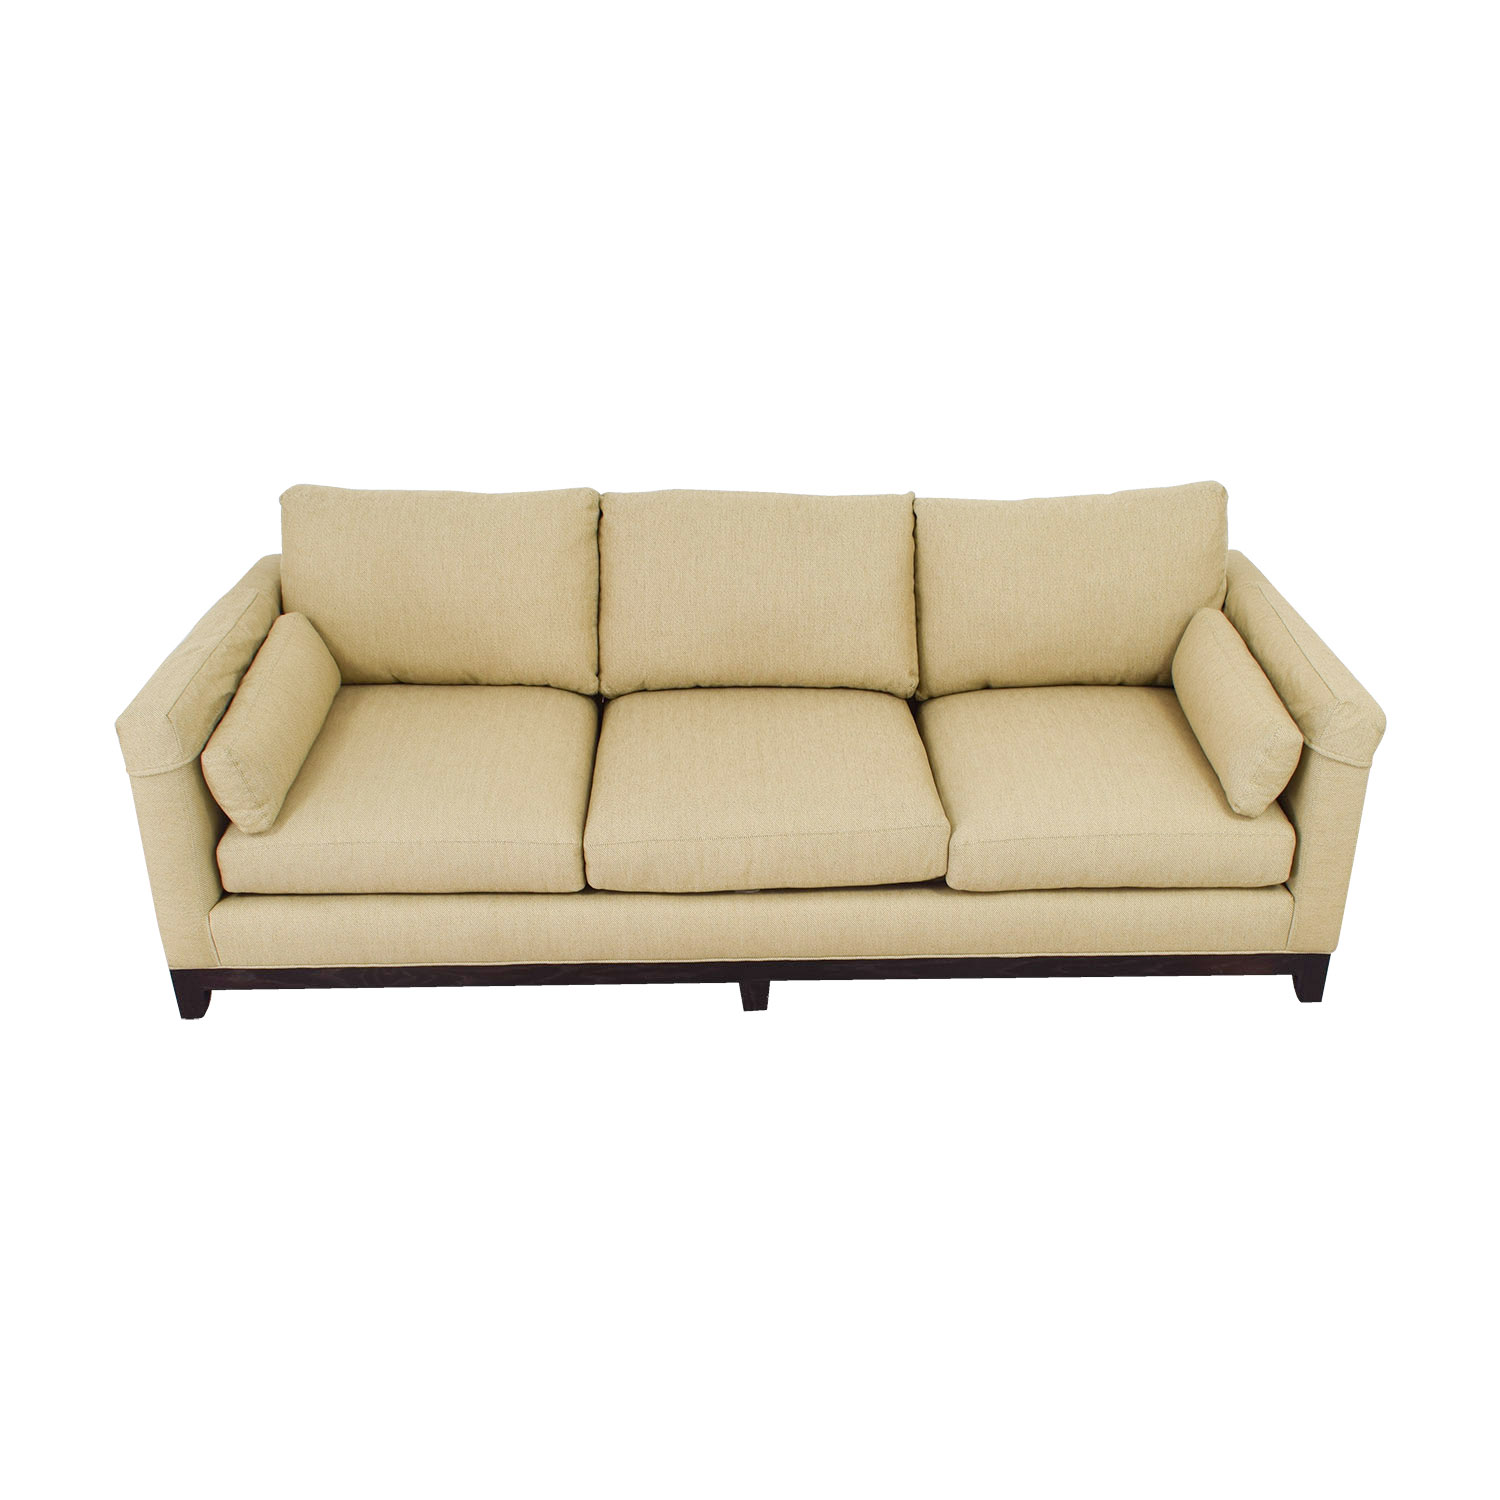 Lee Industries Lee Industries Tan Three-Cushion Sofa nyc